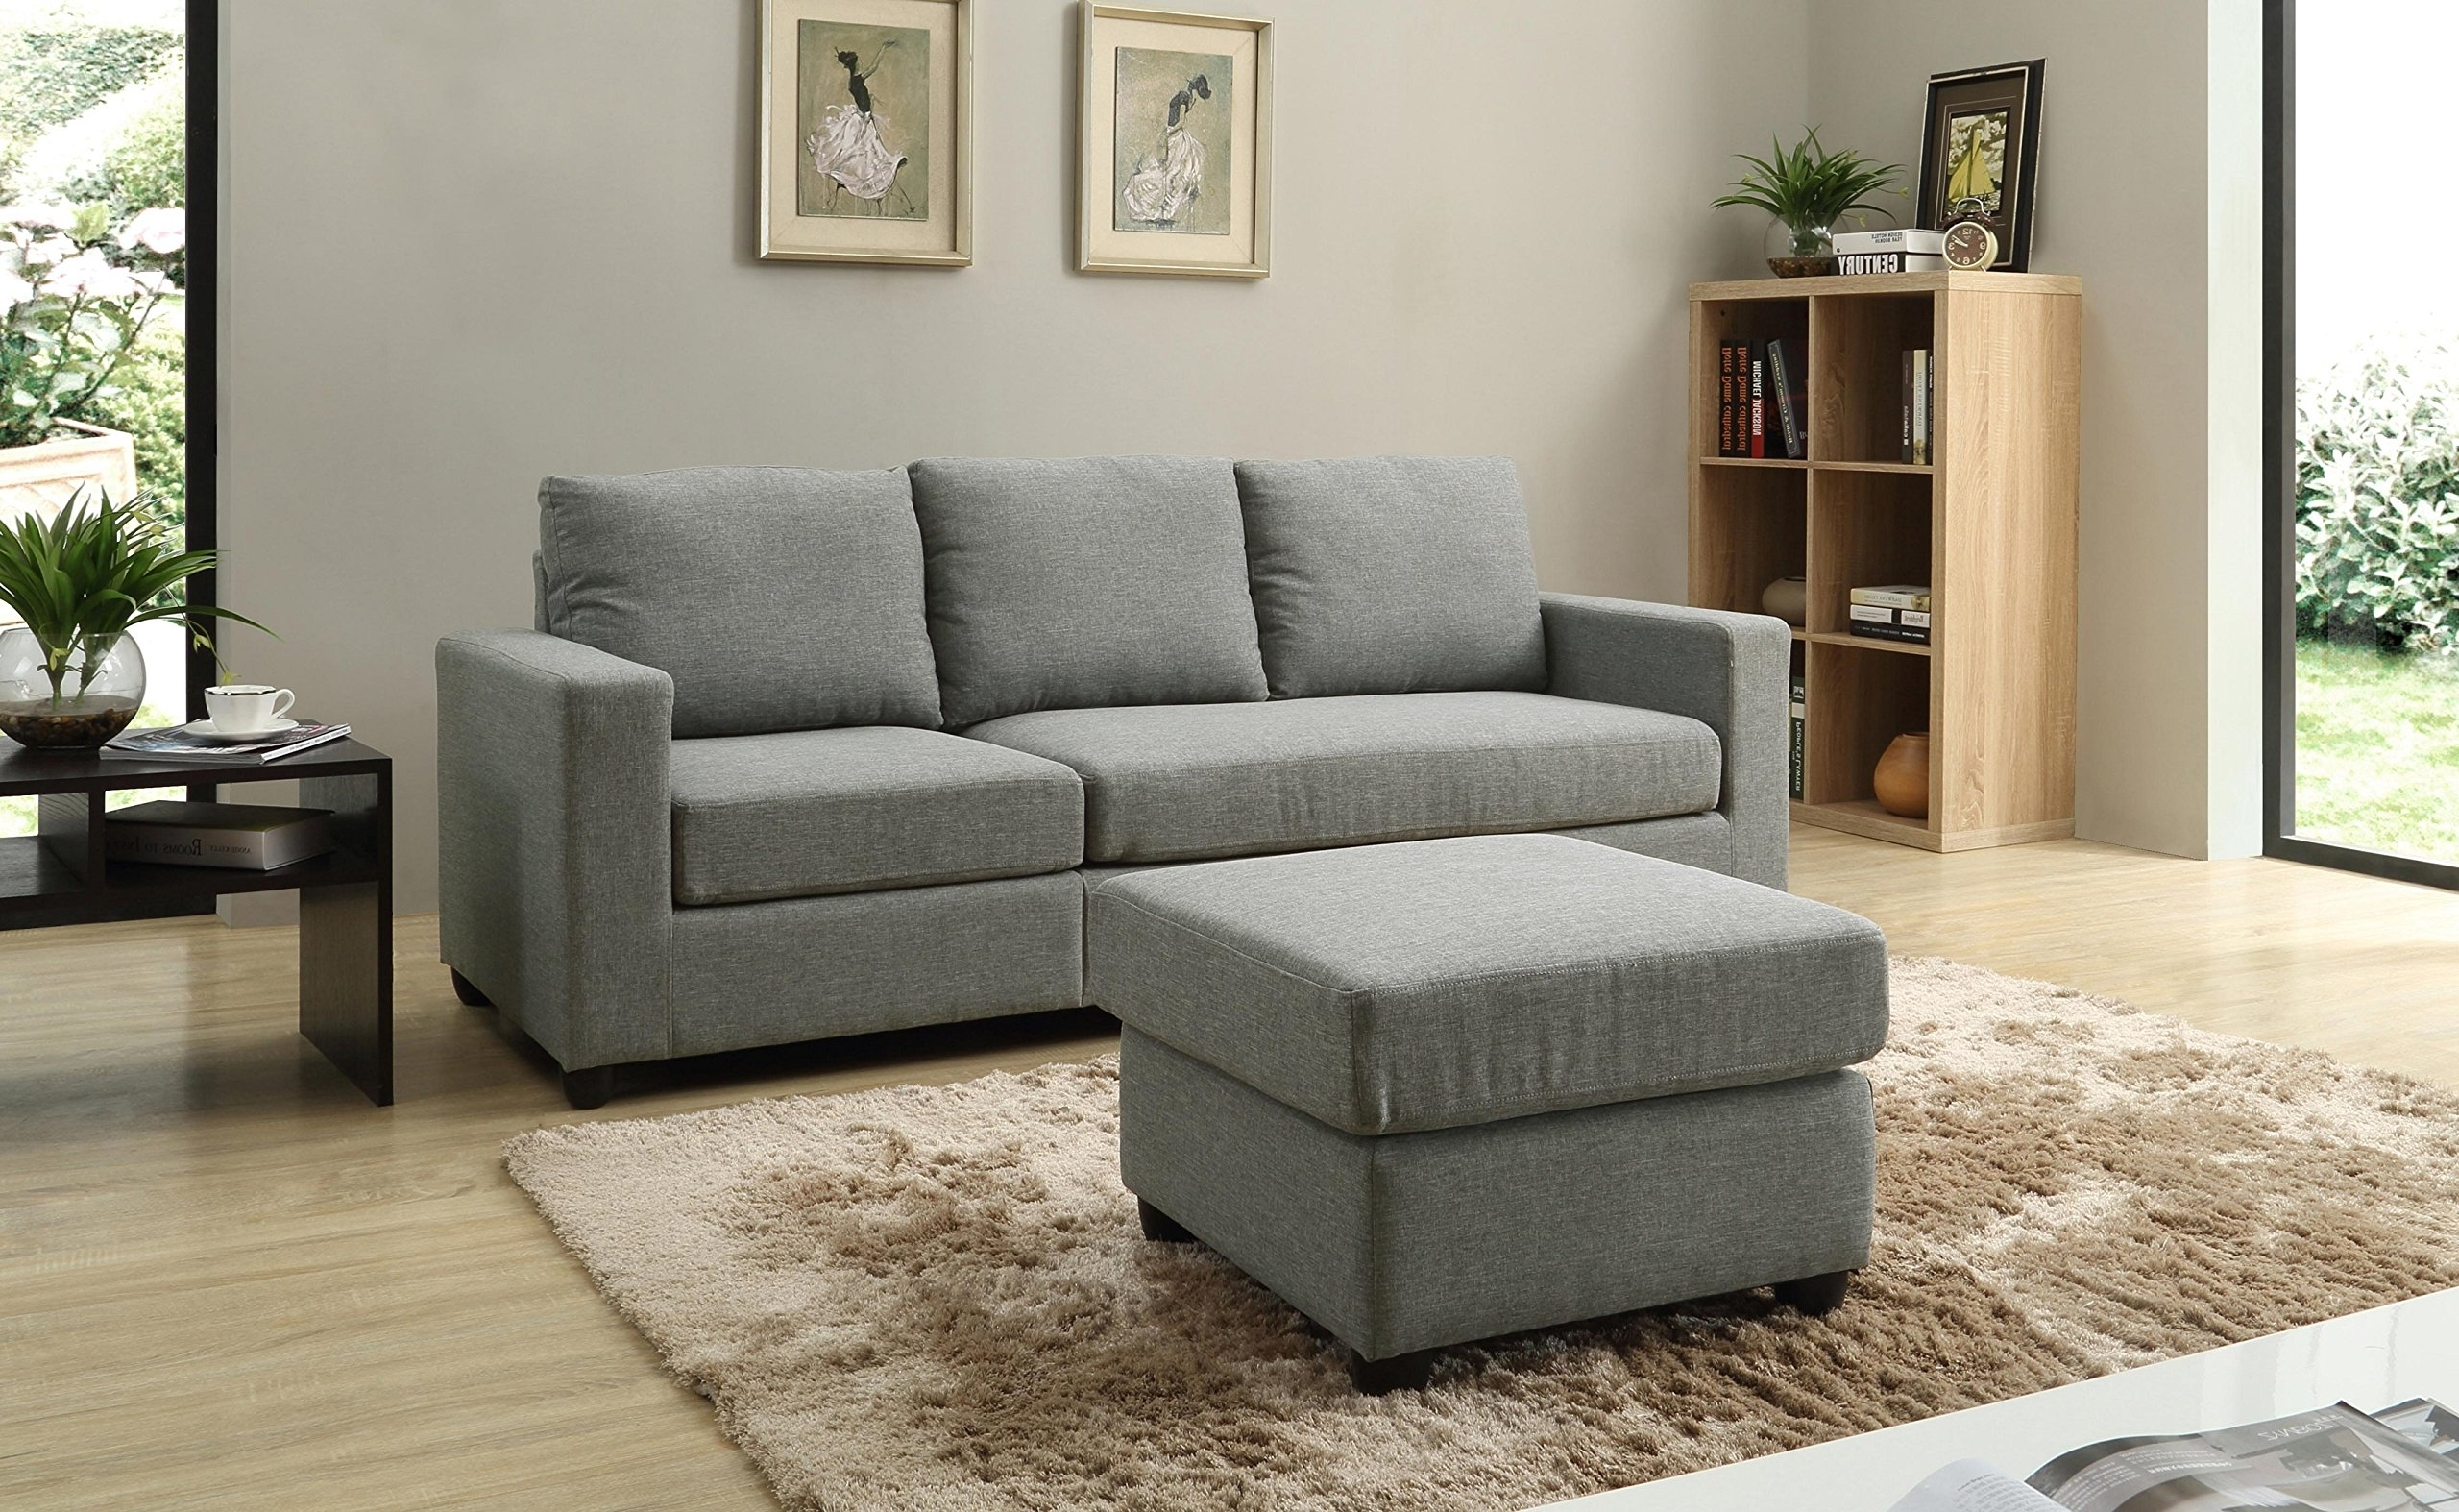 Well Liked Nhi Express Alexandra Convertible Sectional Sofa, Grey (View 15 of 15)